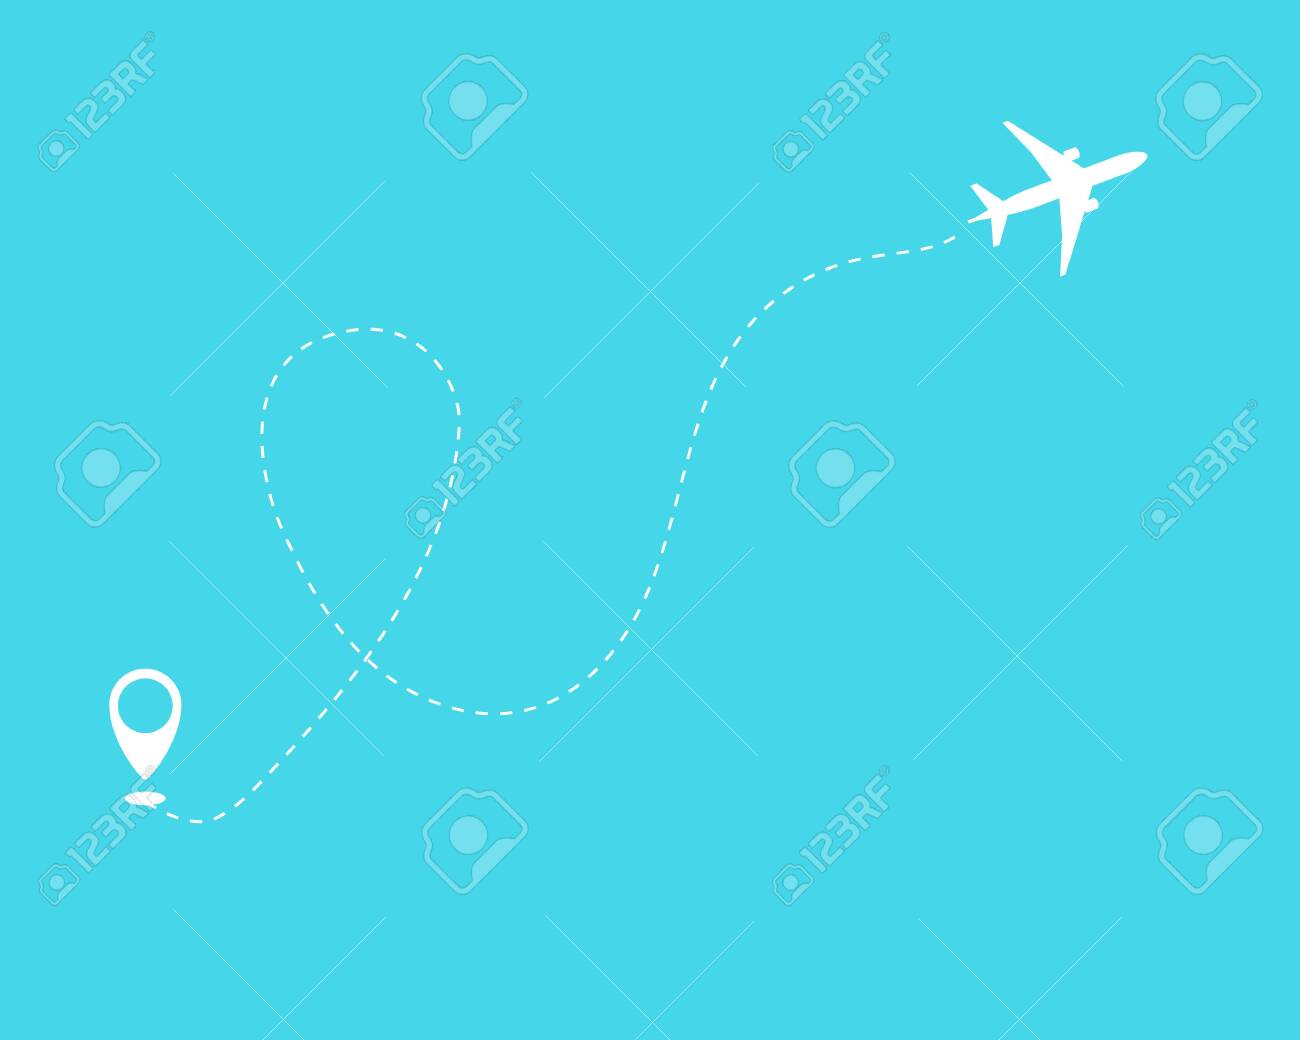 Flat plane and its track on blue background. Vector illustration 10 eps. - 124576906